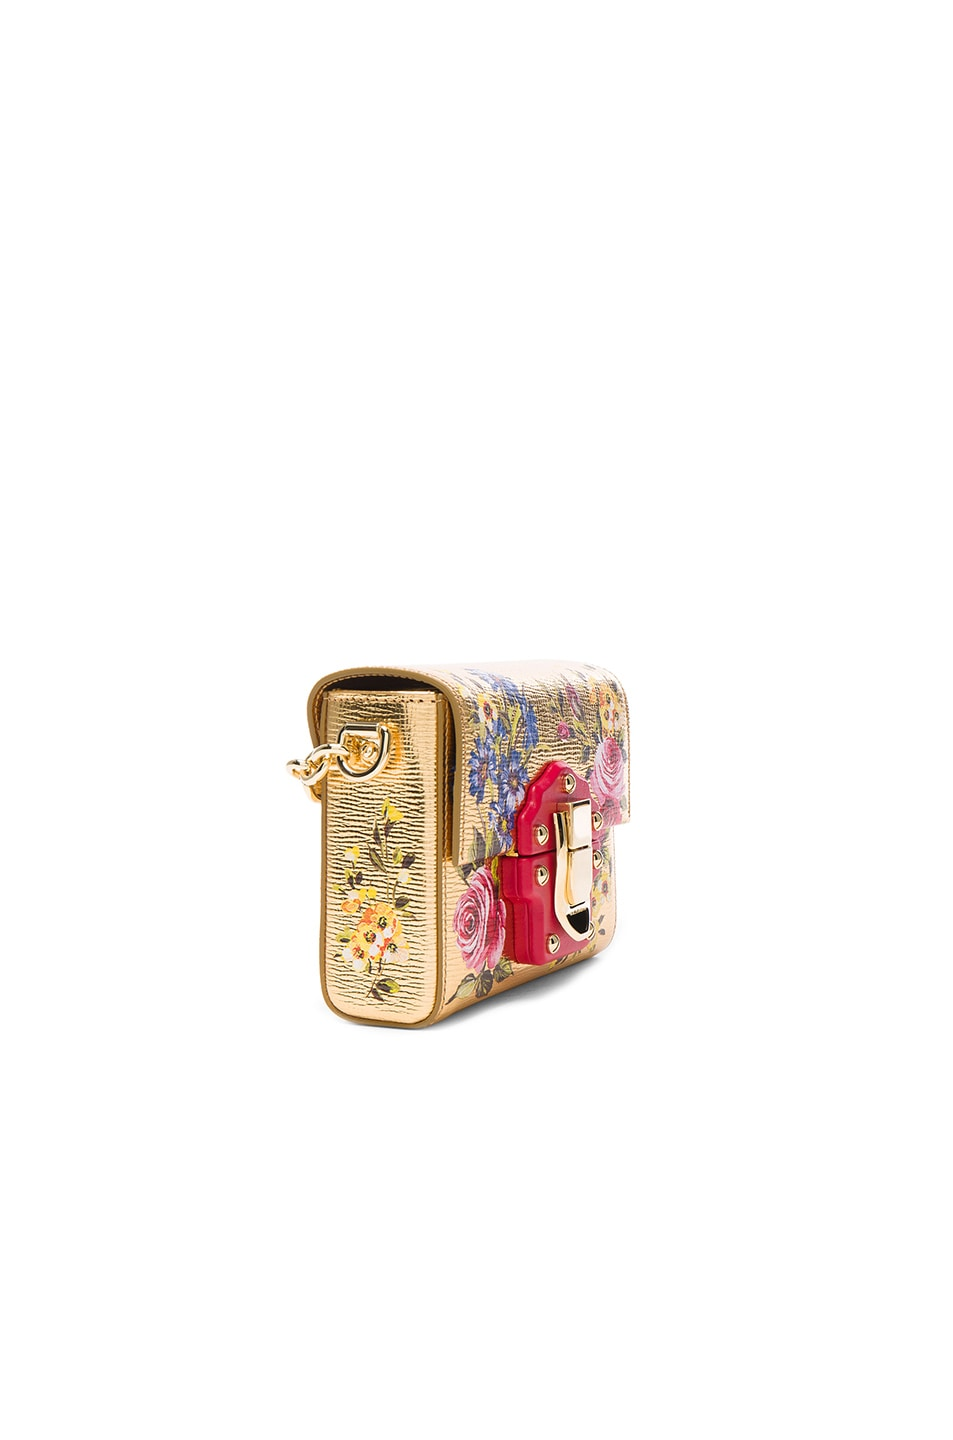 Image 3 of Dolce & Gabbana Soft Square Bag in Gold & Multicolor